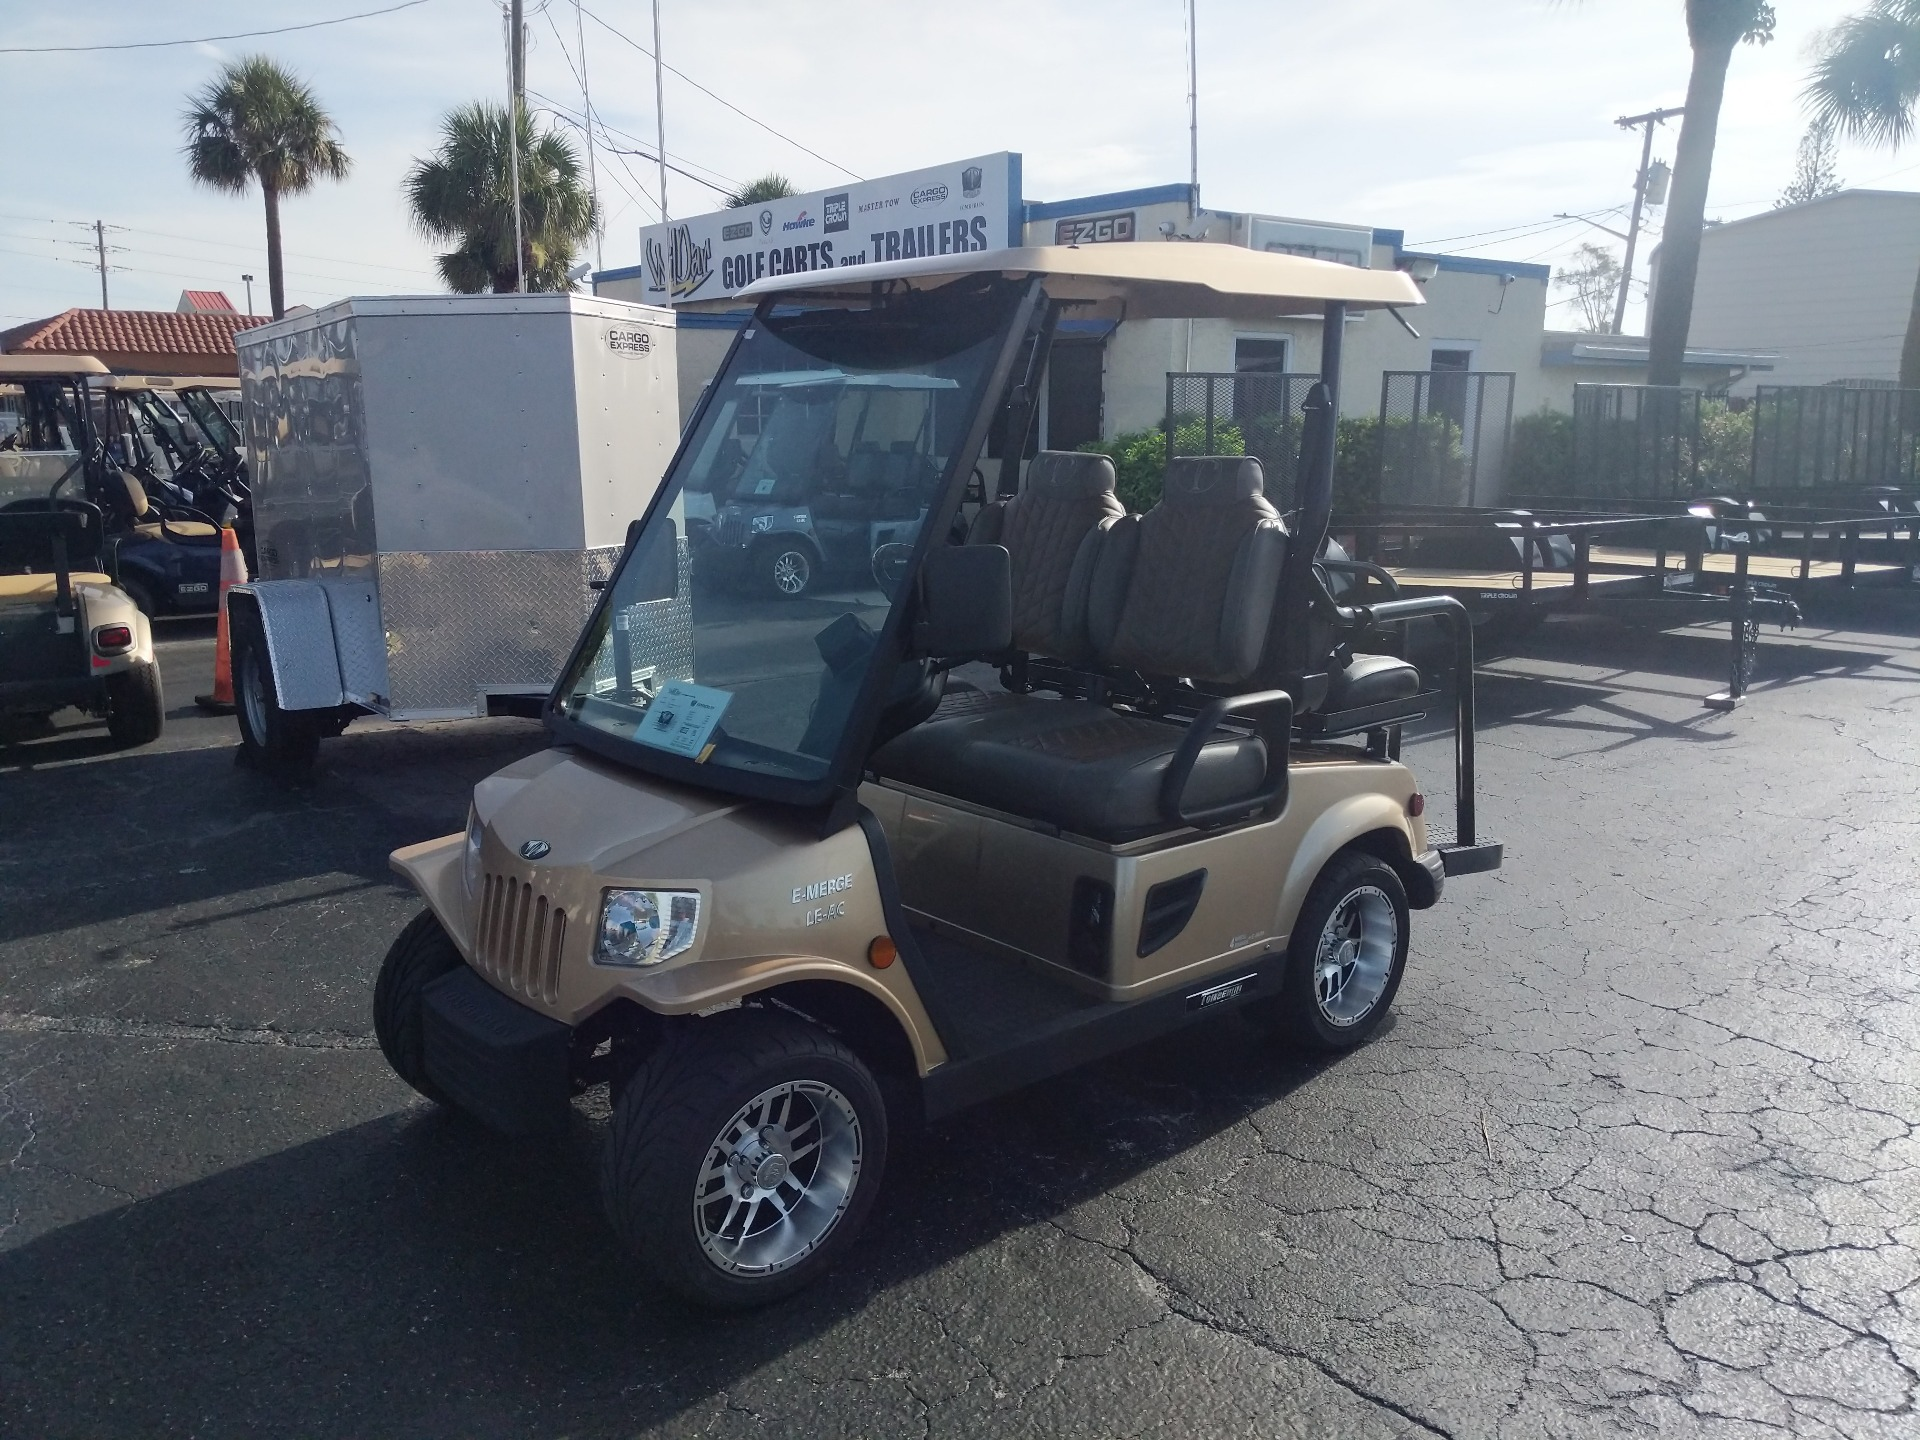 2019 Tomberlin Emerge E2-LE Plus in Fort Pierce, Florida